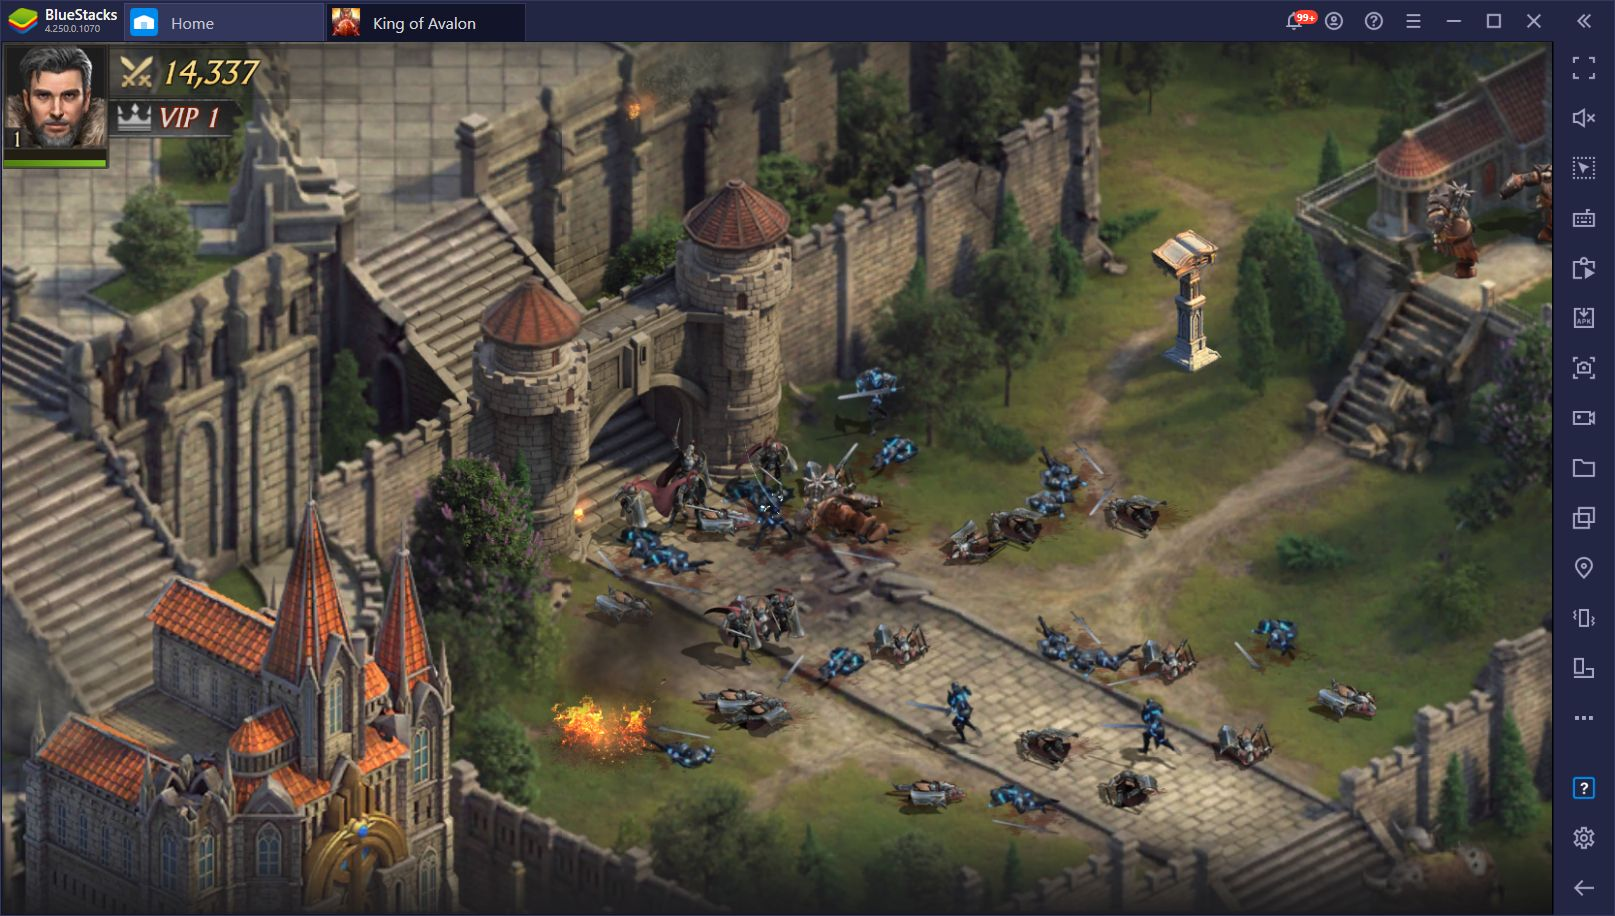 How to Play King of Avalon on PC with BlueStacks